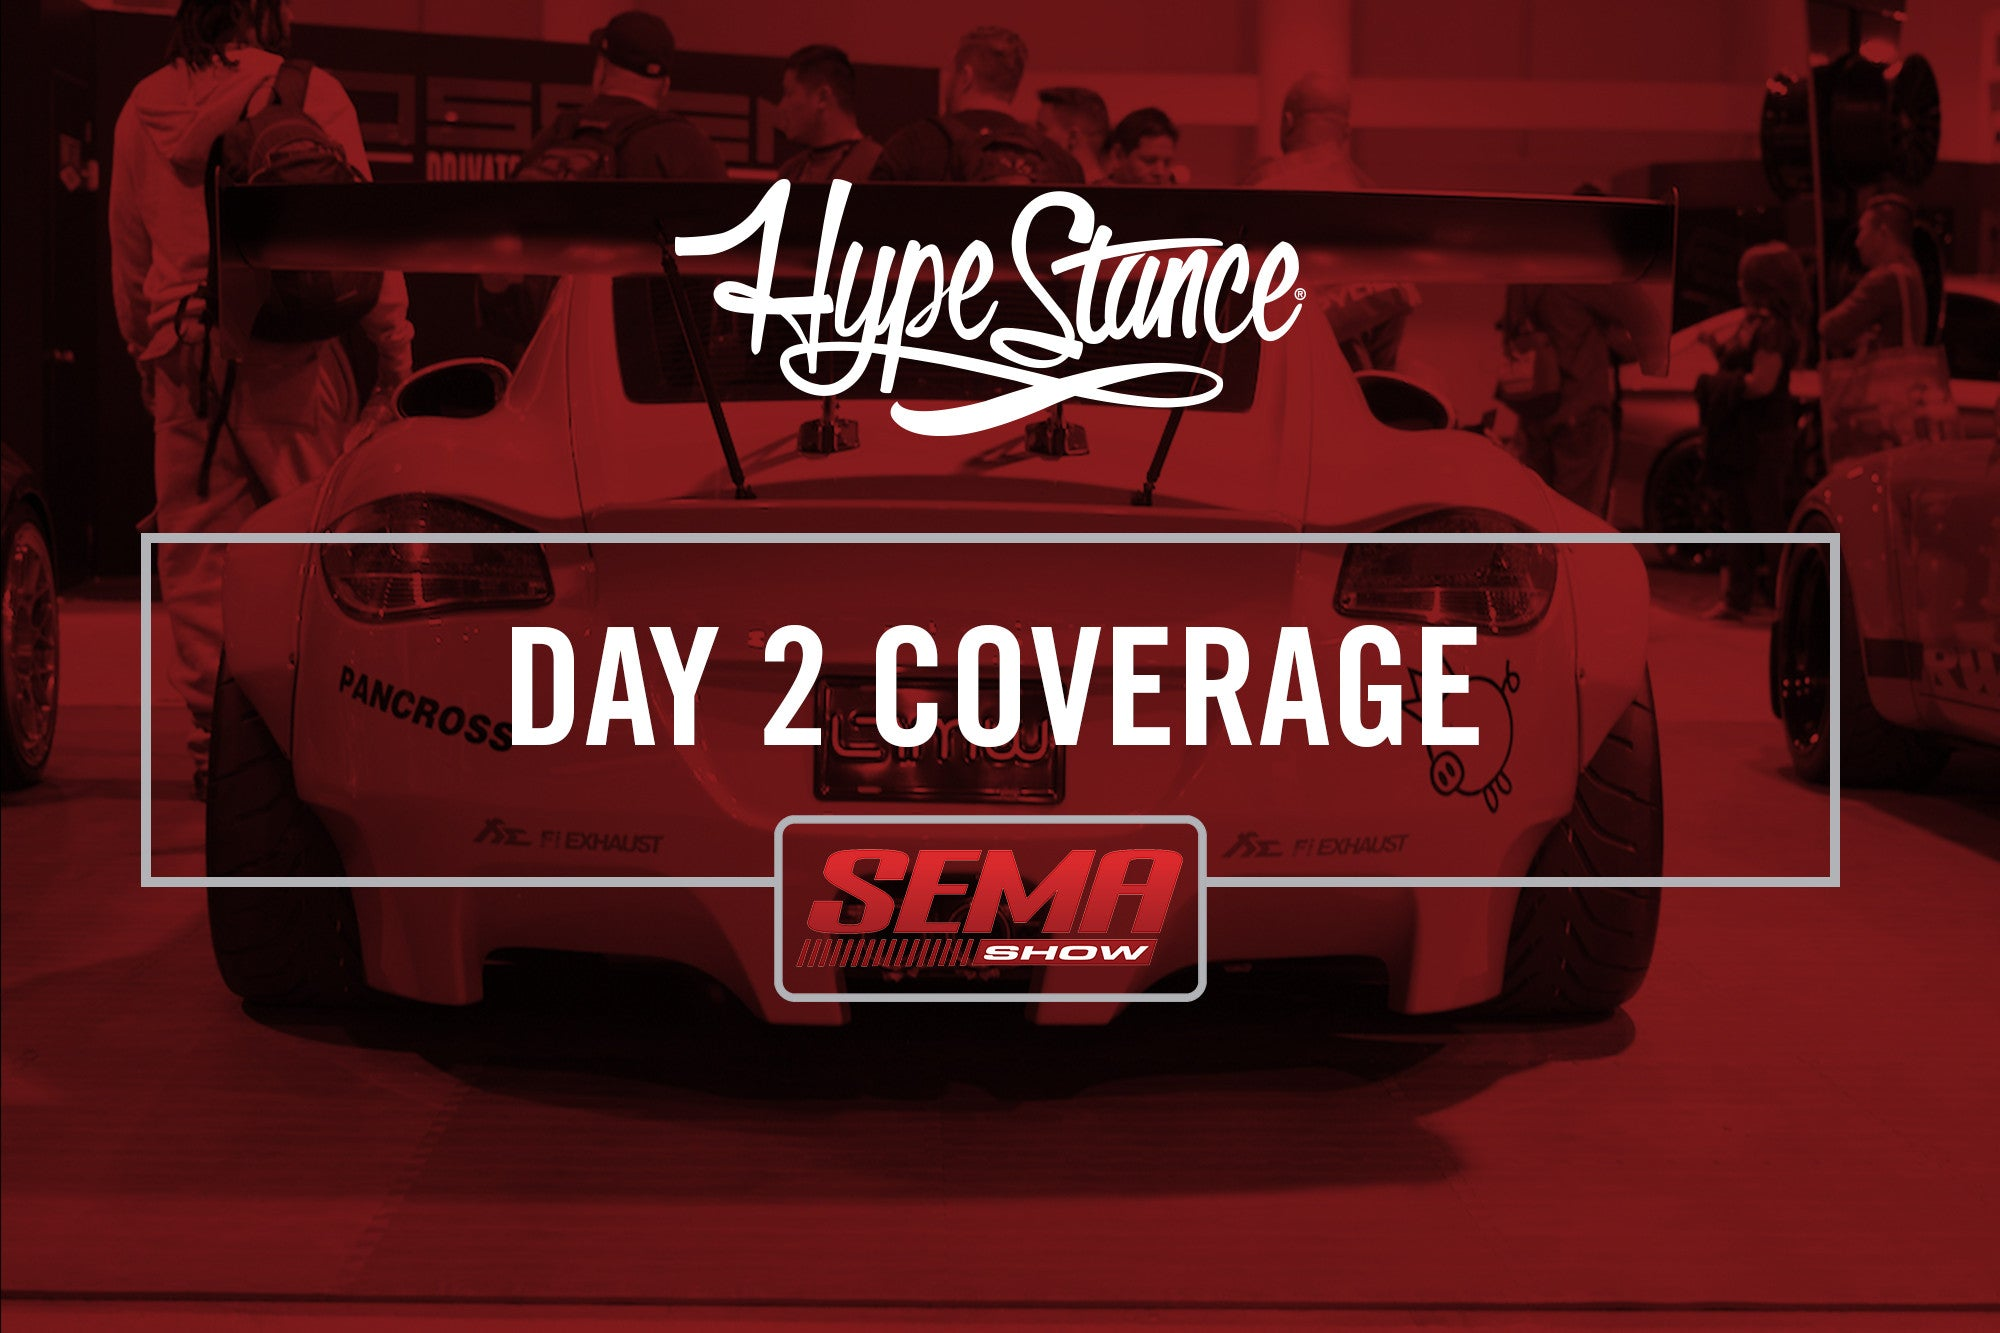 2016 Hypestance SEMA Coverage Day 2